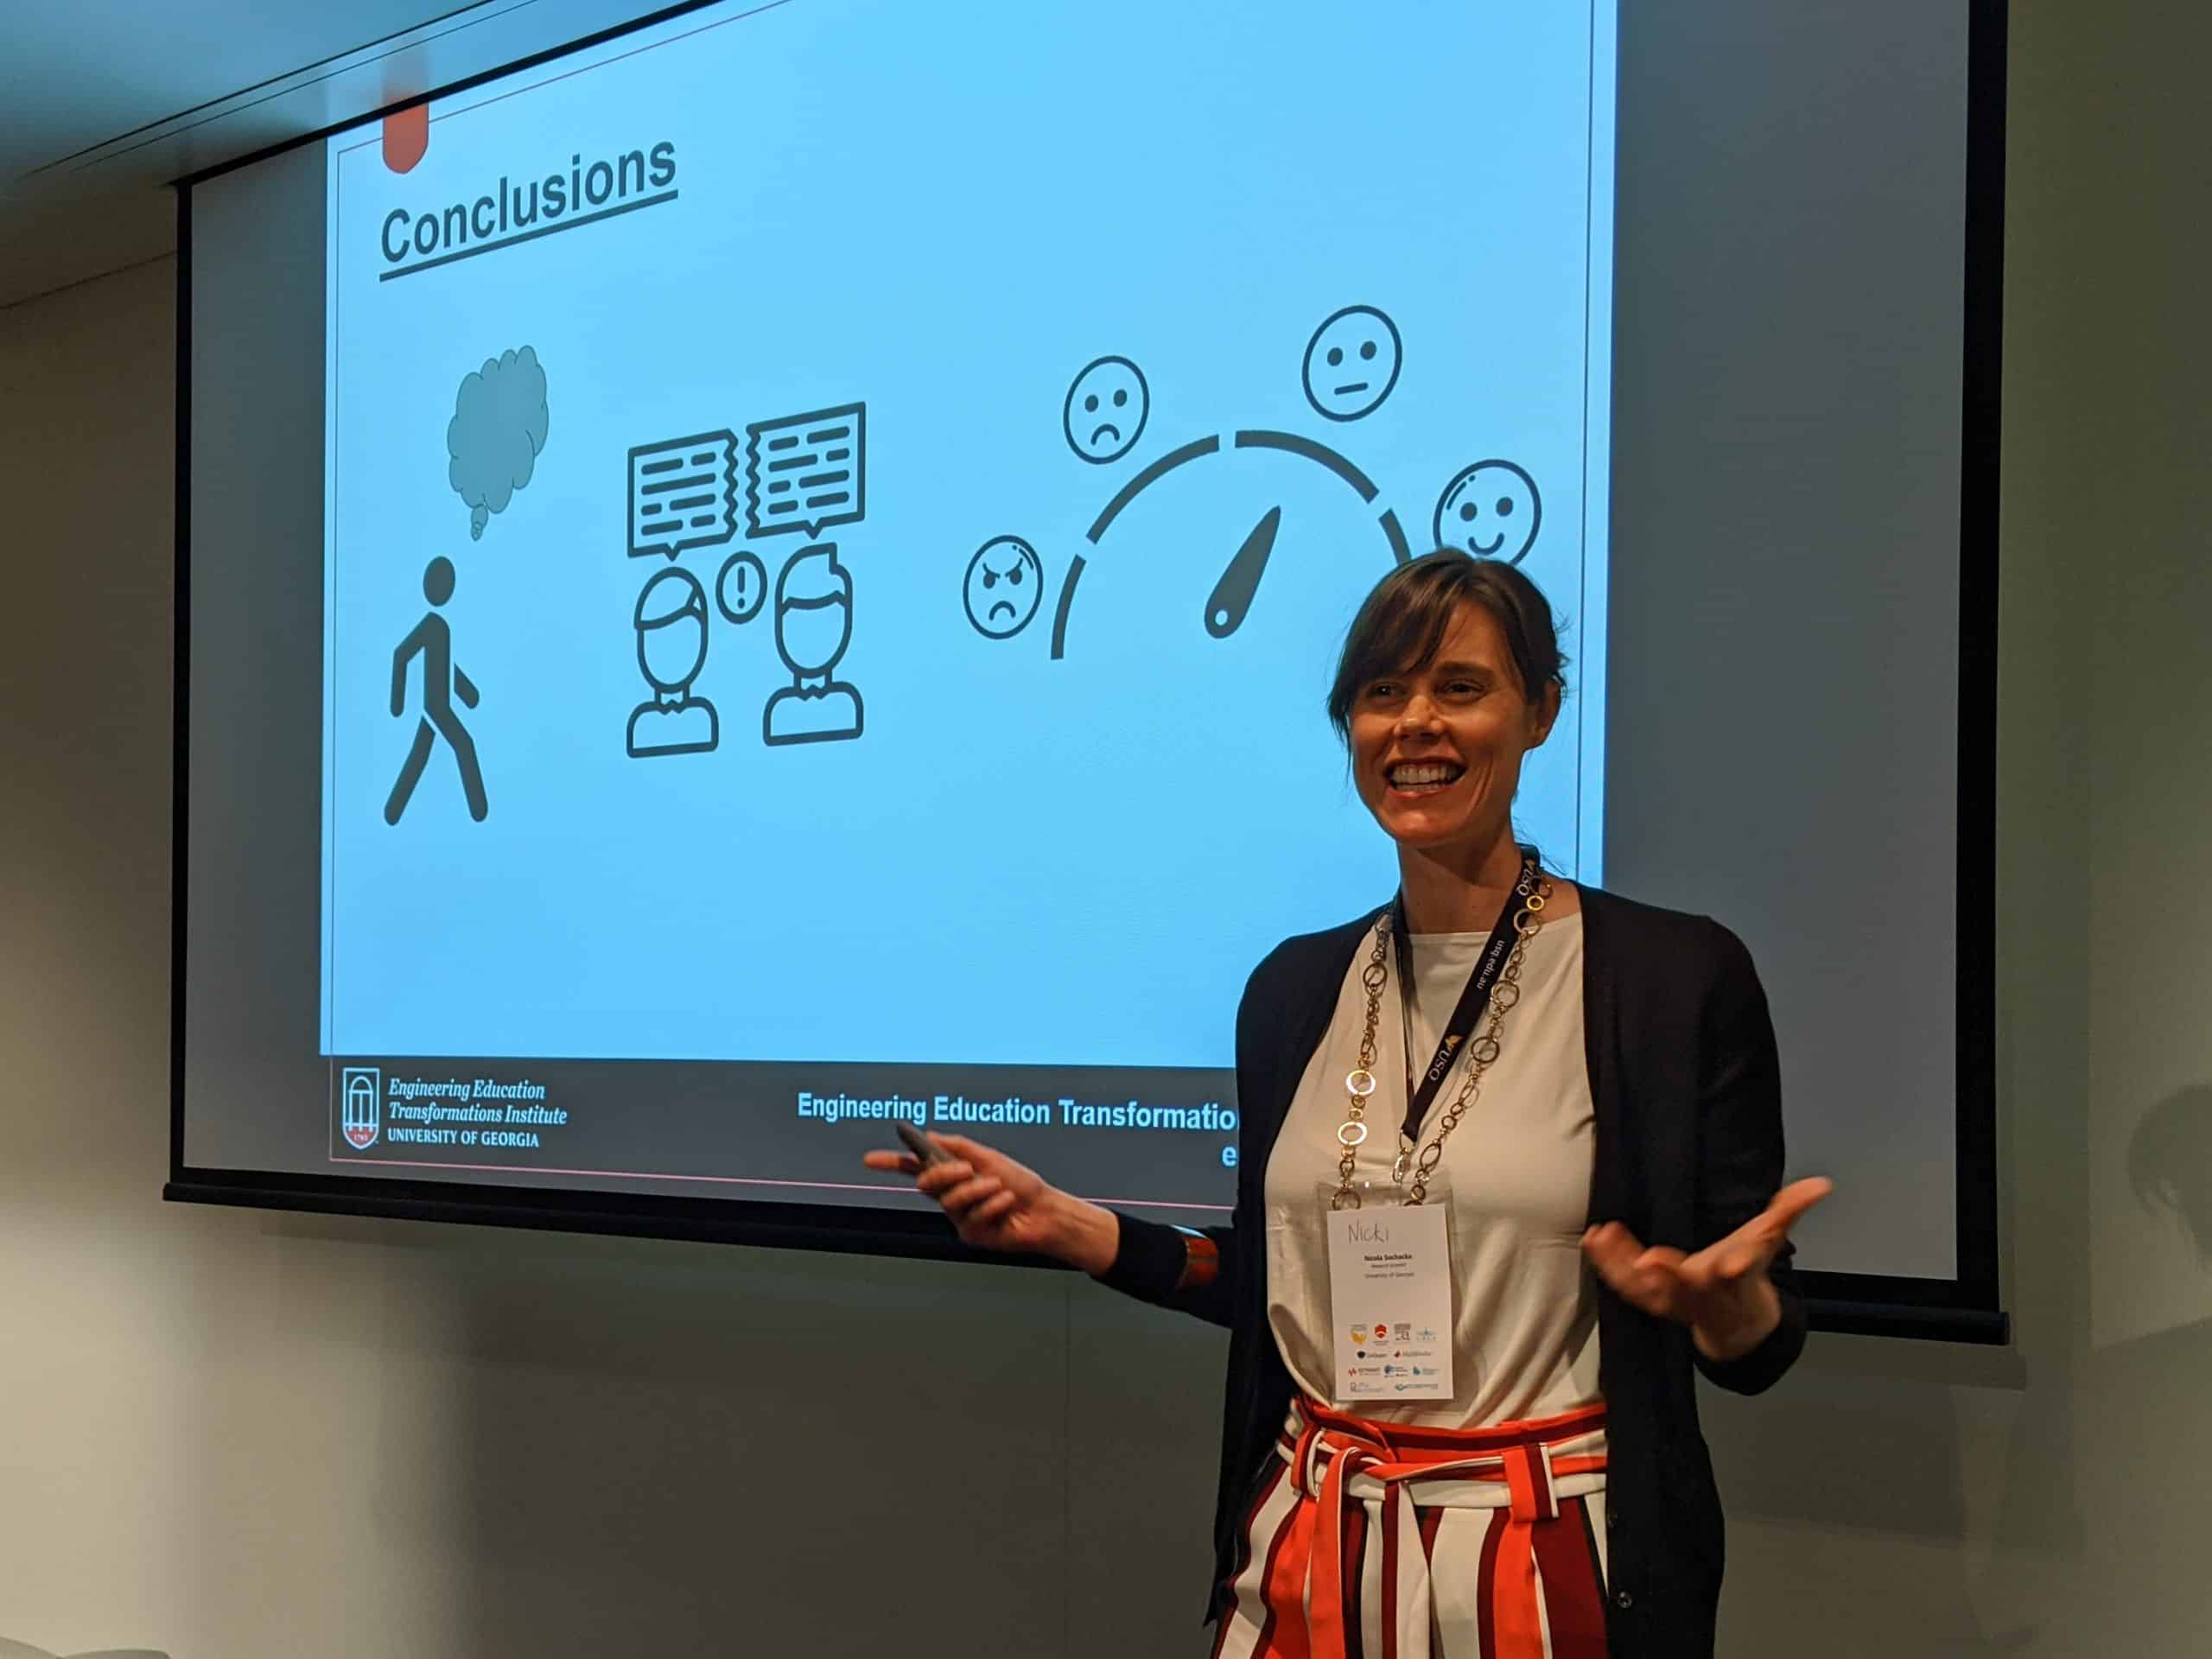 EETI wins best overall paper award at the 2019 Australasian Association for Engineering Education Conference